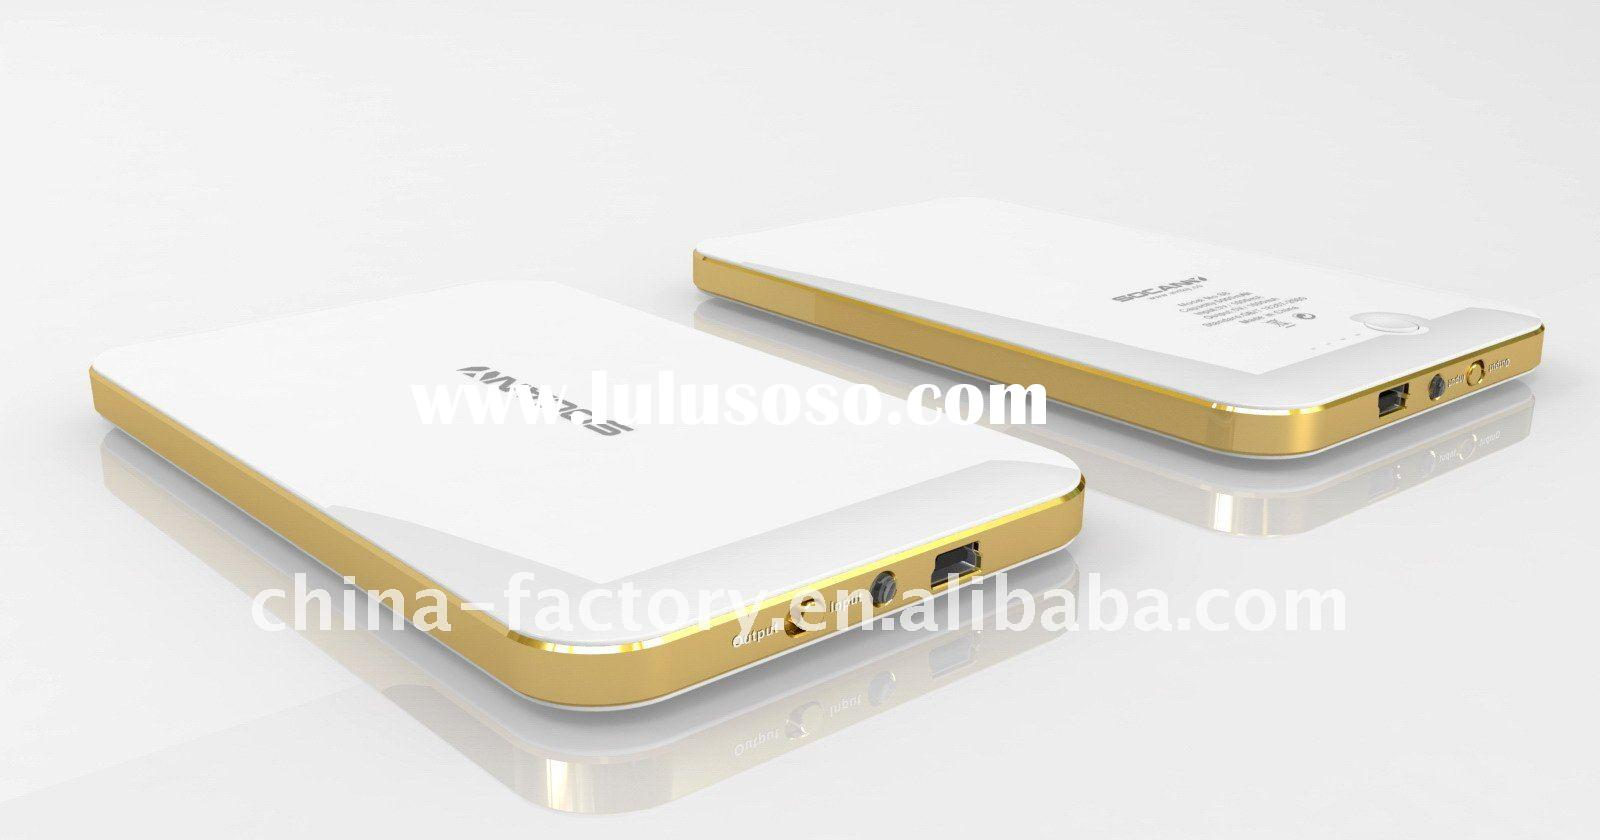 NEW ARRIVAL5000mAh Portable Power Bank charger for iPhone, iPad, iPod, Blackberry